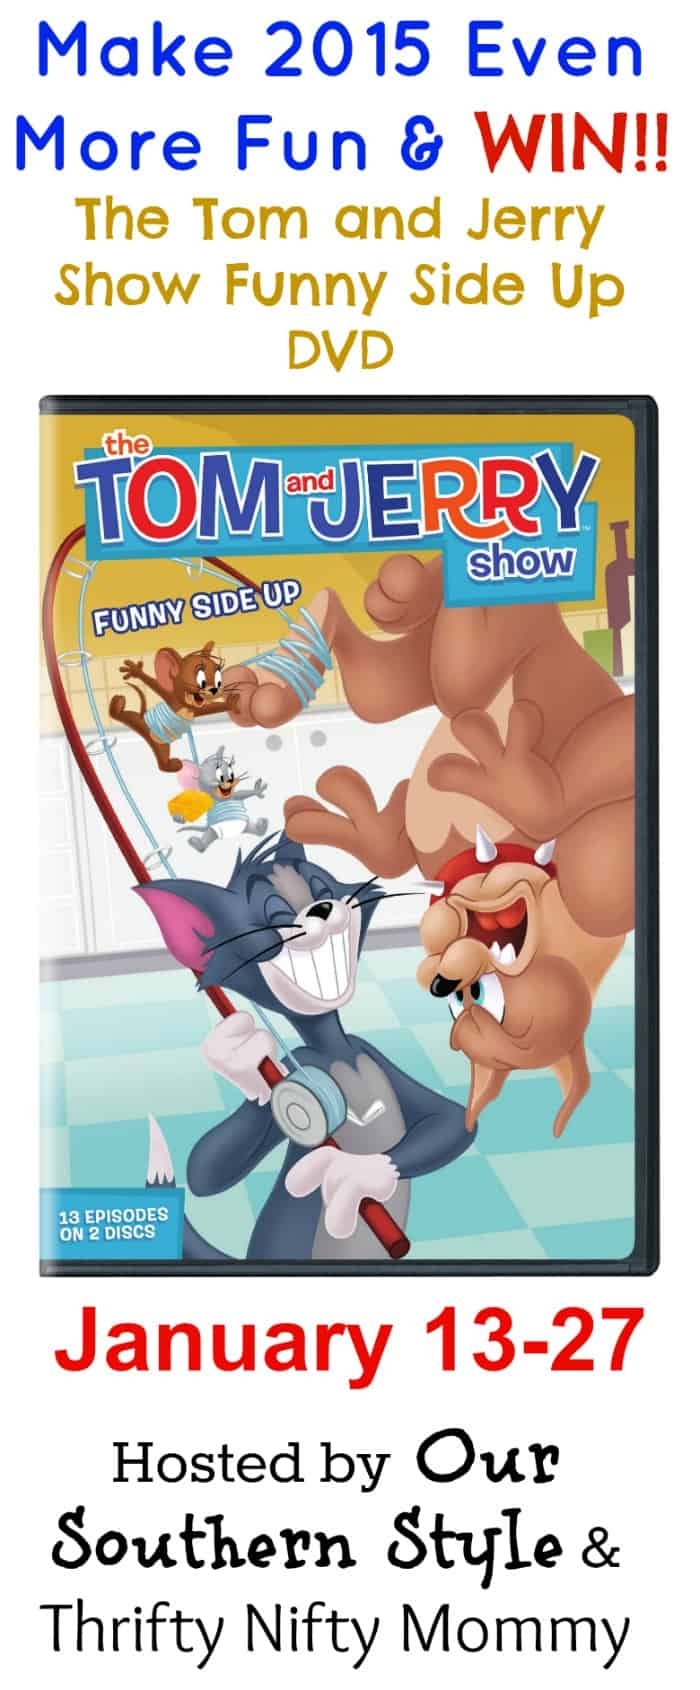 The Tom and Jerry Show Season 1 Part 2 – Funny Side Up DVD GIVEAWAY!!